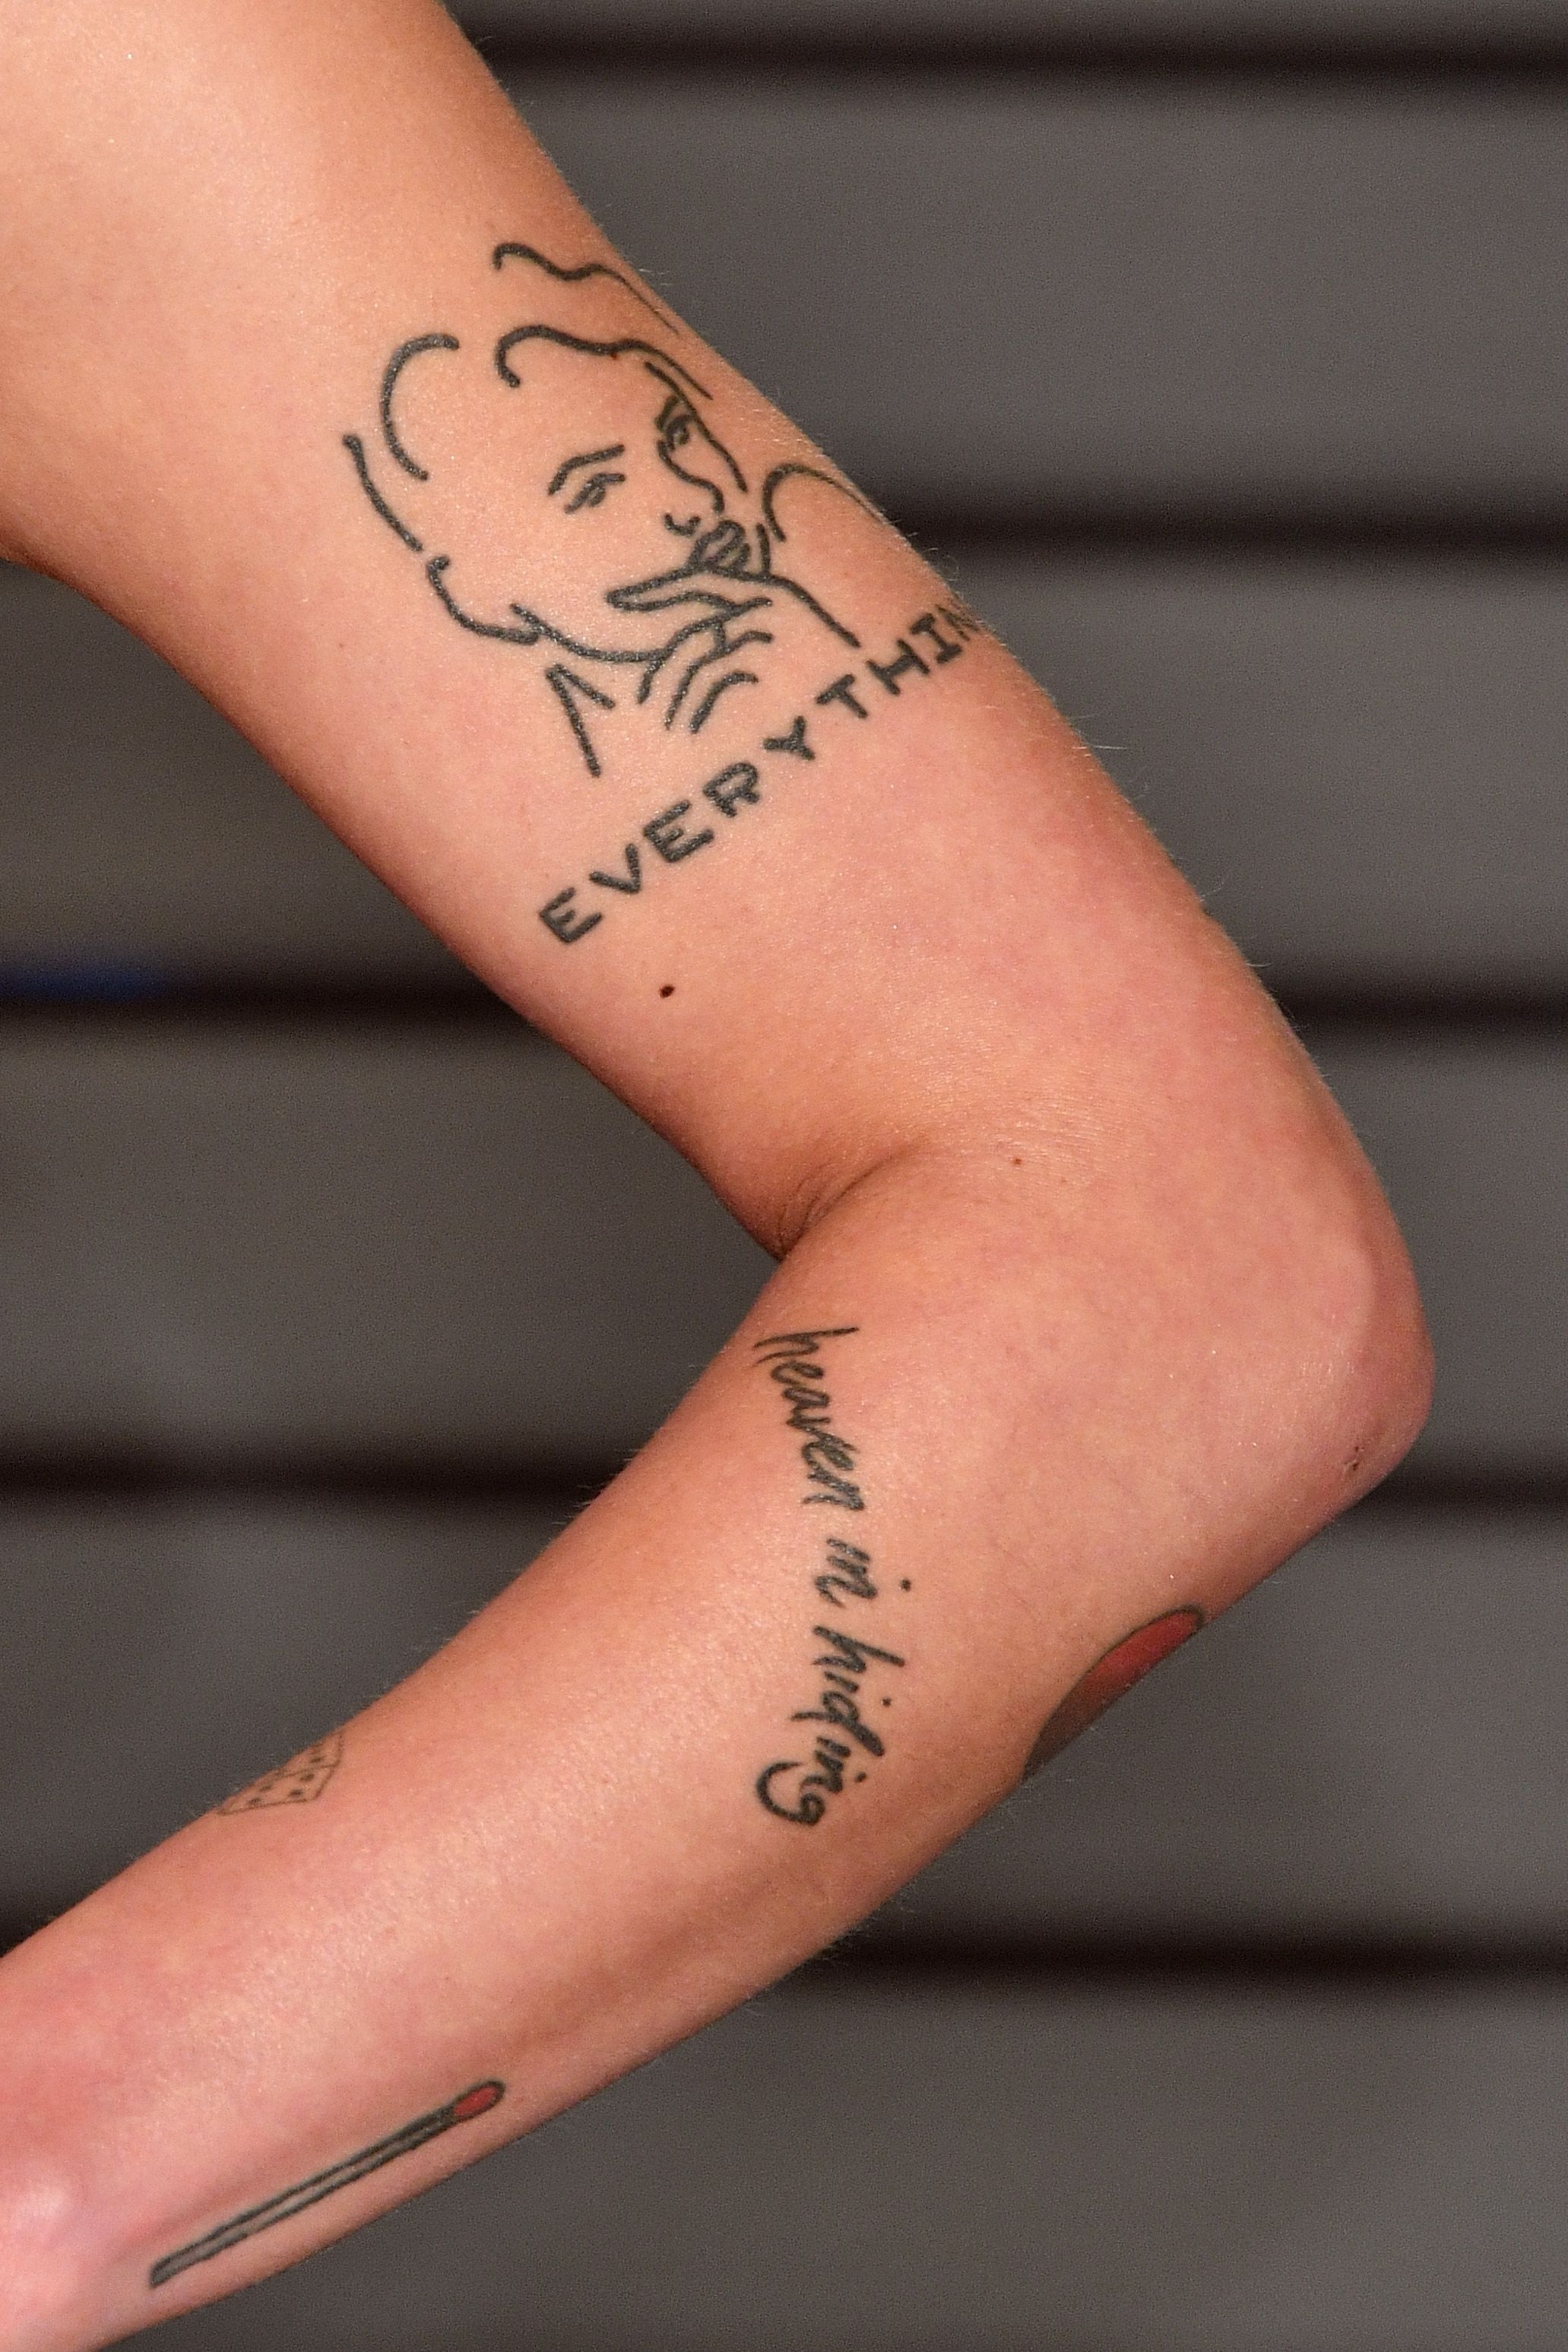 Halsey's Tattoos - Photos And Meaning Of Halsey's Tattoos